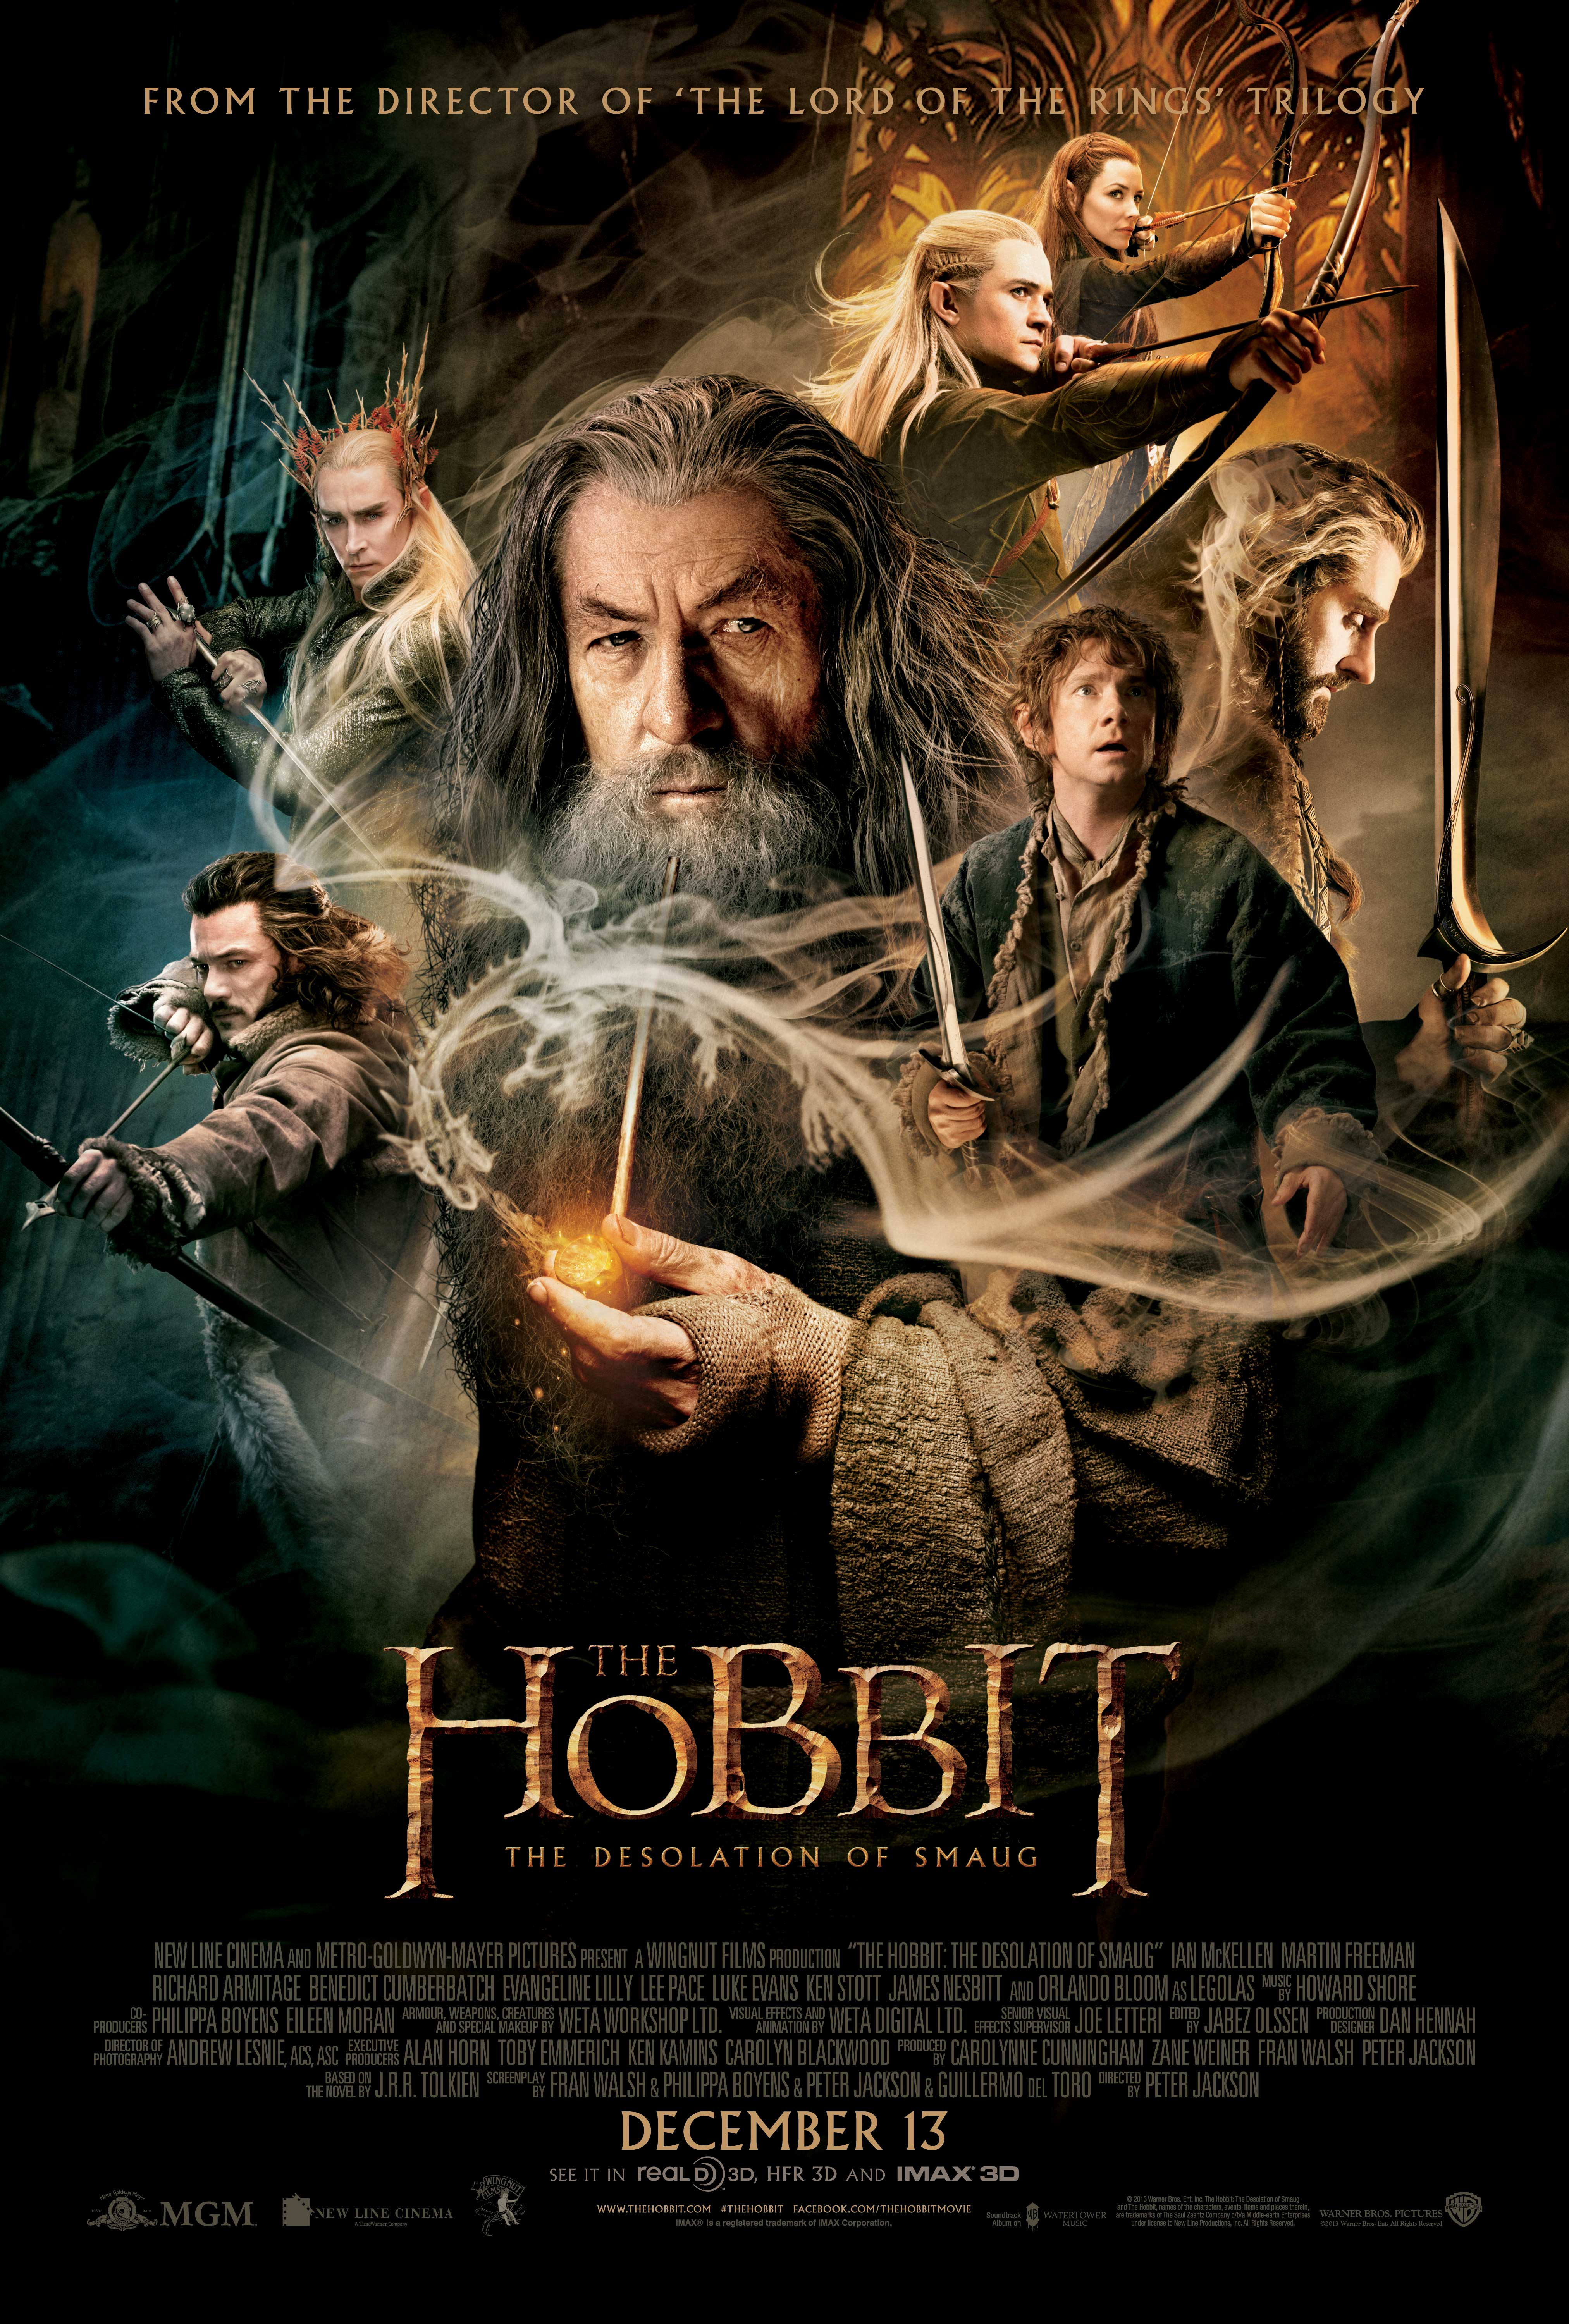 Hobbit_the_desolation_of_smaug_ver15_xlg.jpg